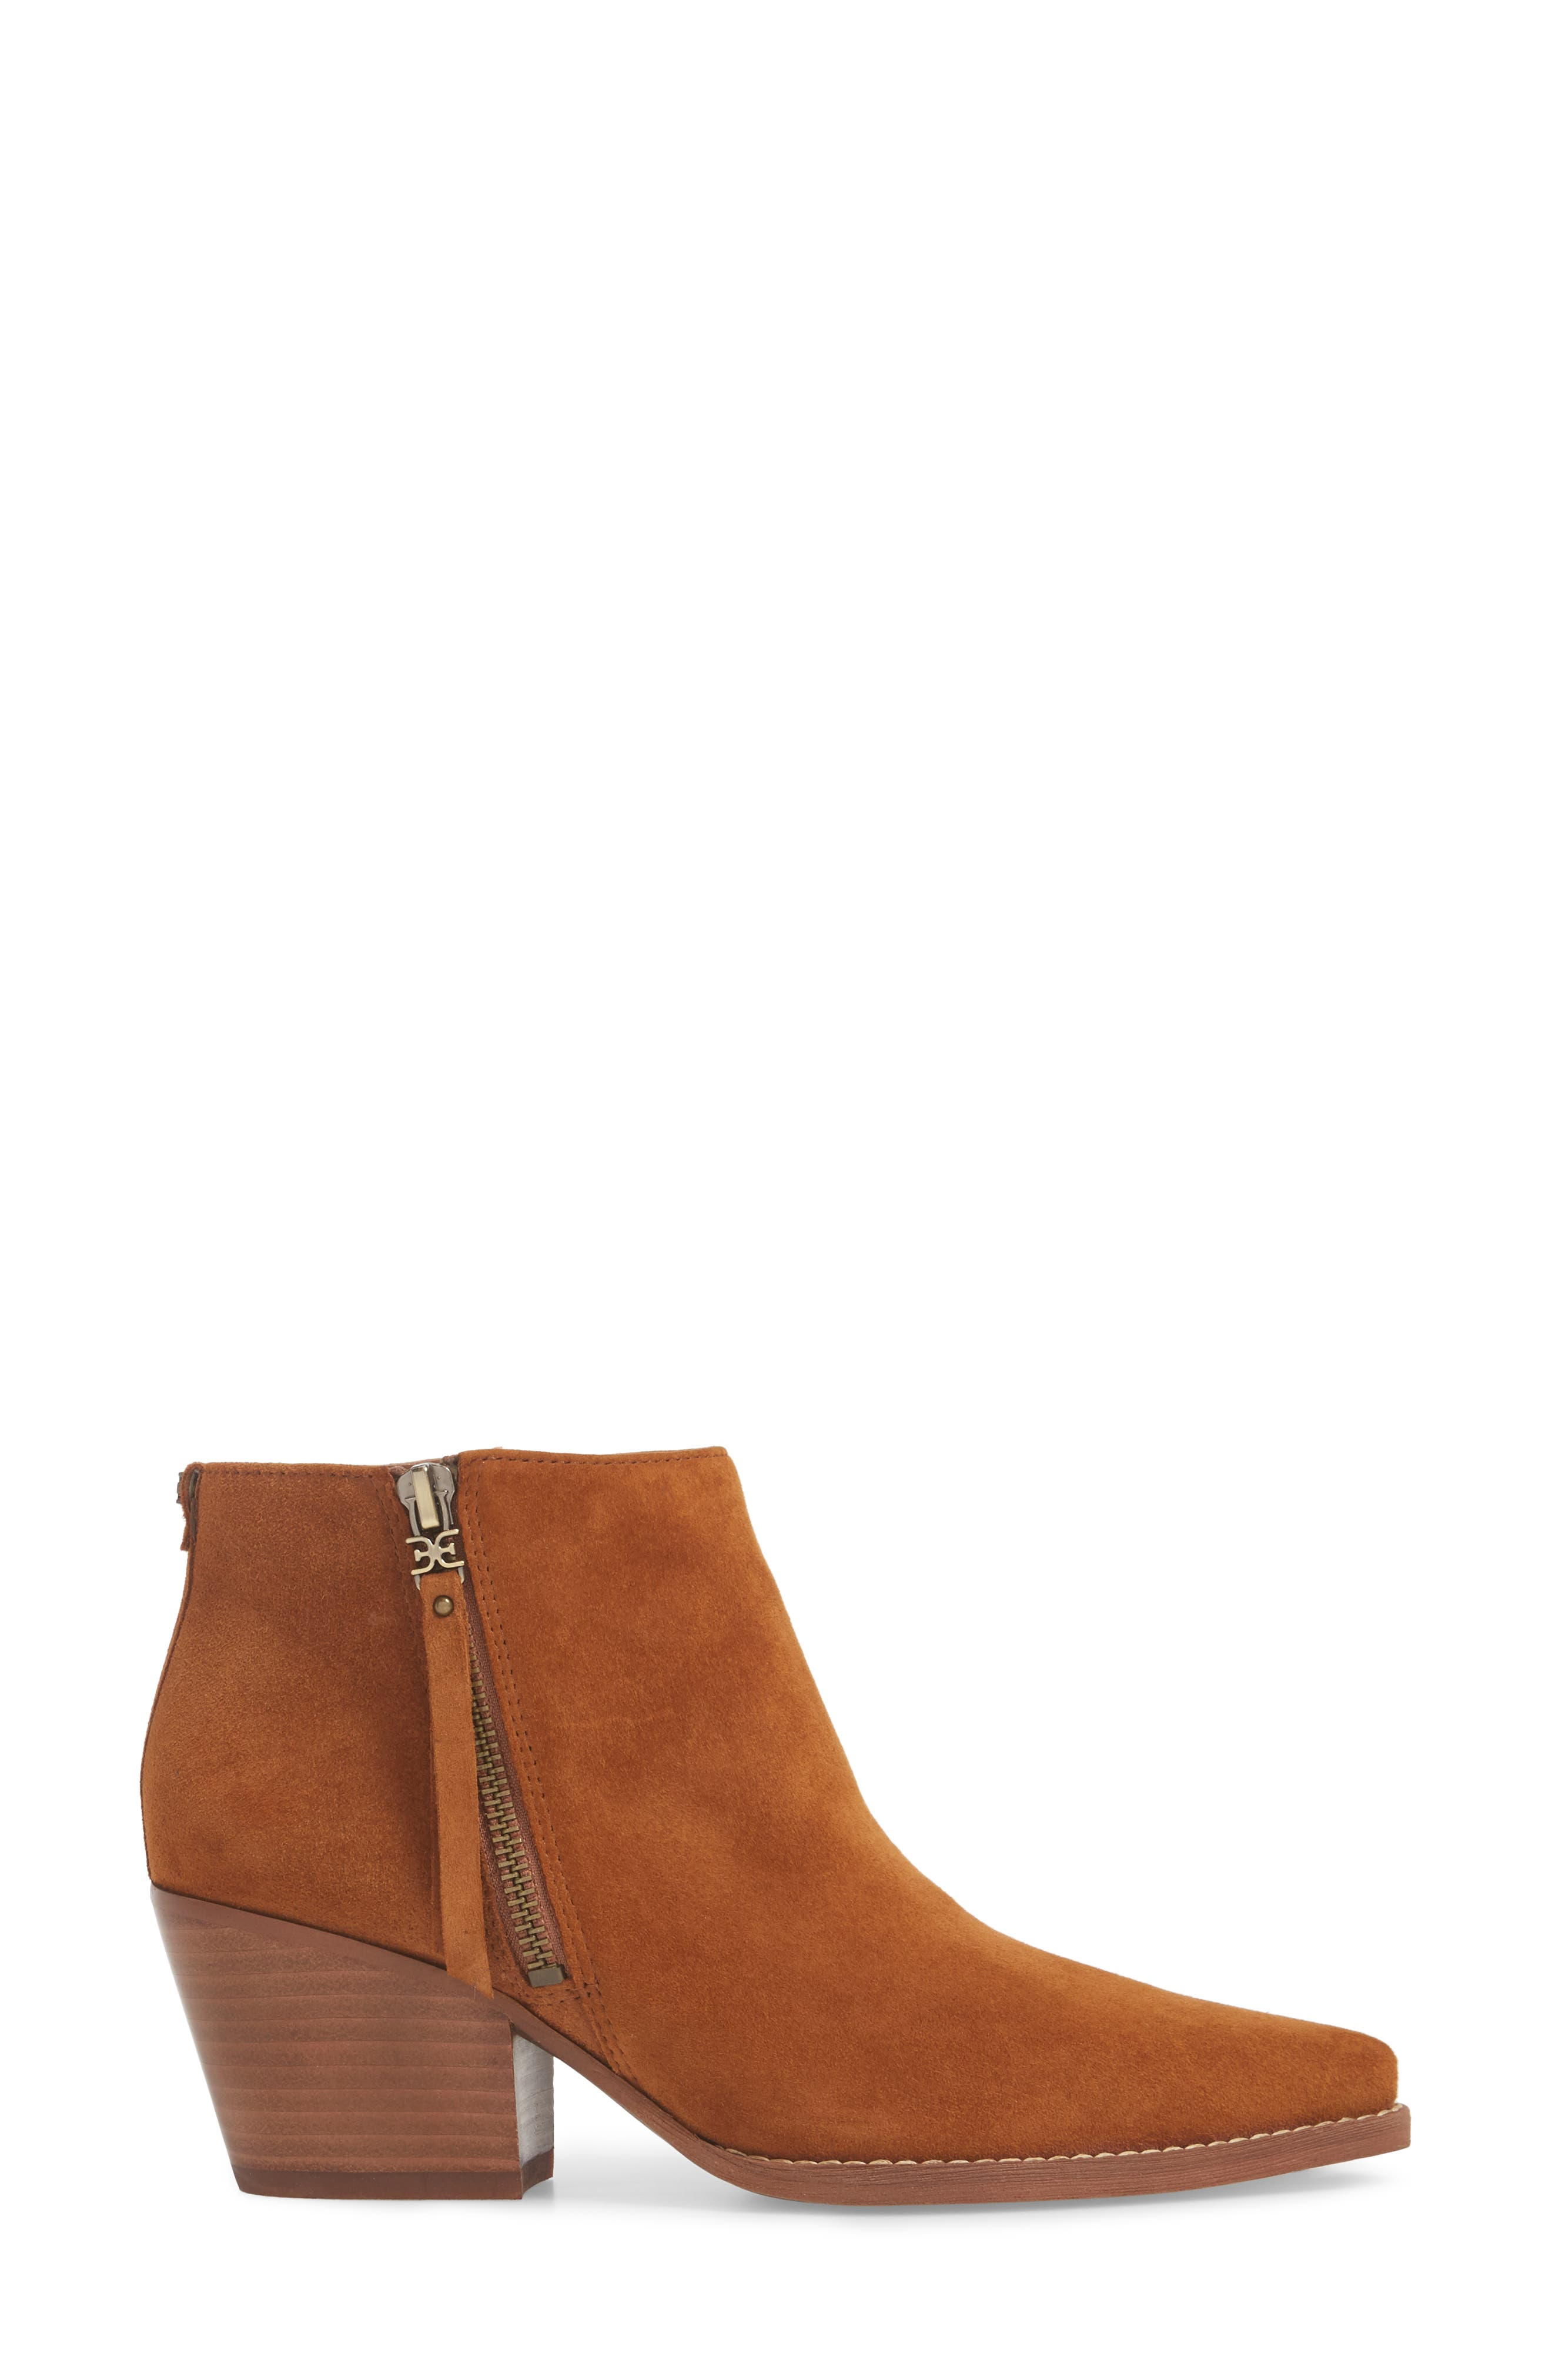 Walden Bootie,                             Alternate thumbnail 3, color,                             LUGGAGE SUEDE